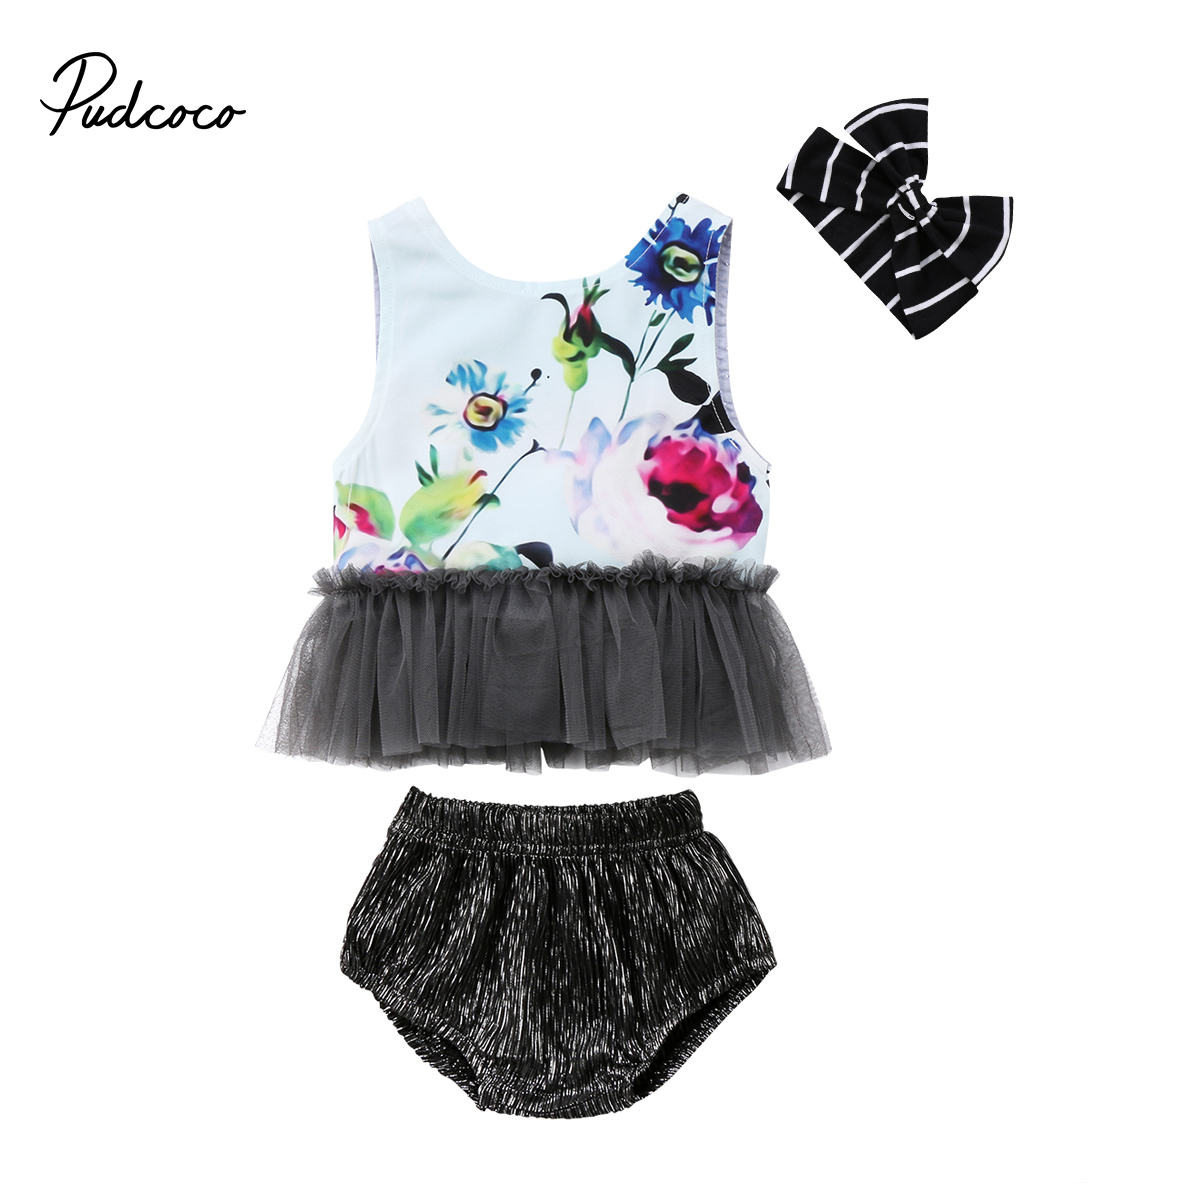 2018 Brand New Newborn Toddler Infant Baby Girl Clothes Tops Tutu Pants Headband 3Pcs Set Chiffon Sunsuit Clothes Summer Outfit us stock floral newborn baby girls lace romper pants headband outfit set clothes infant toddler girl brief clothing set playsuit